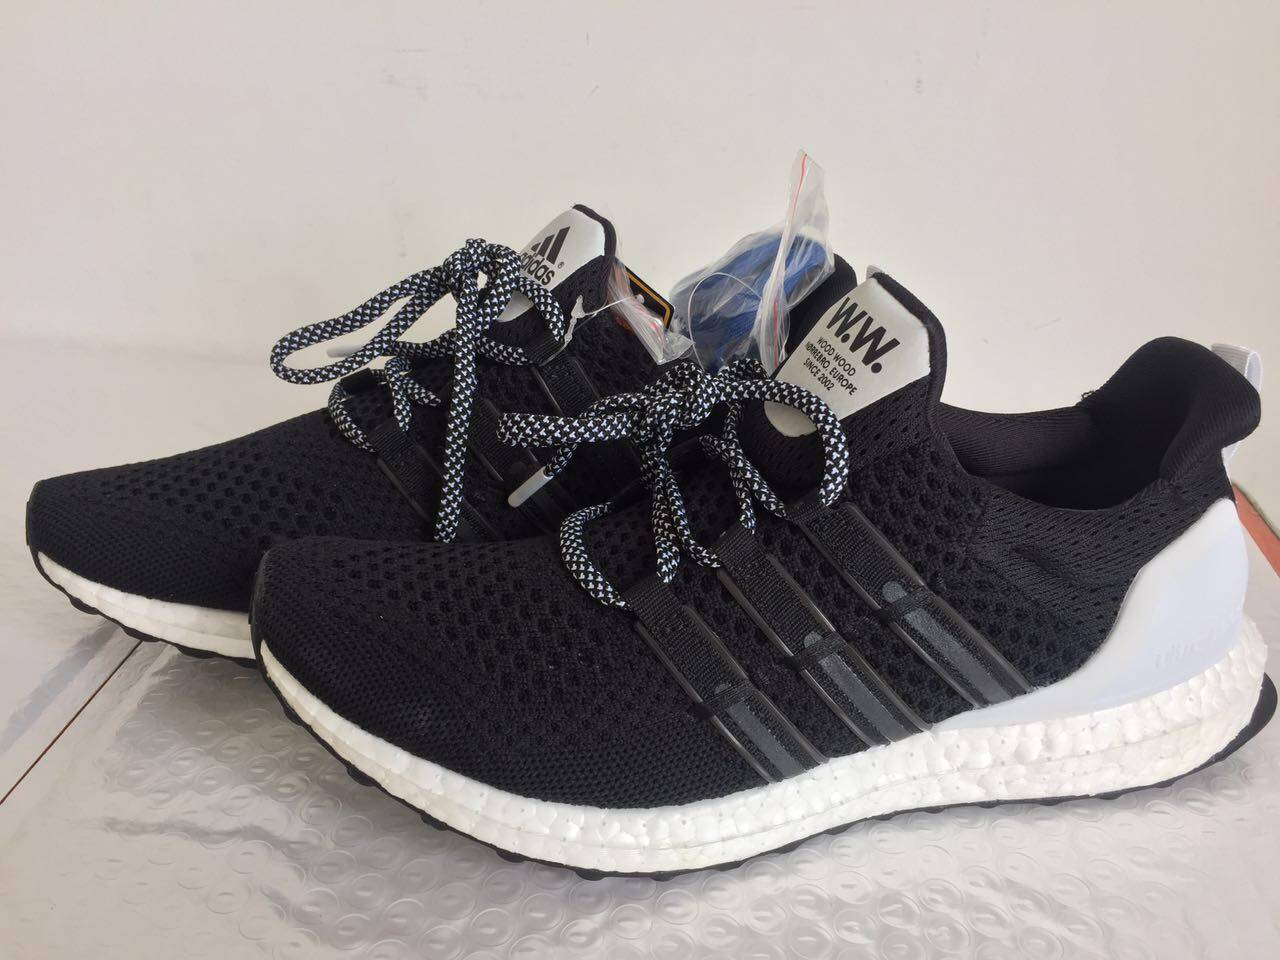 1 ADIDAS ULTRA BOOST WOOD WOOD AF5778 PK EXCLUSIVE 77922f5c2